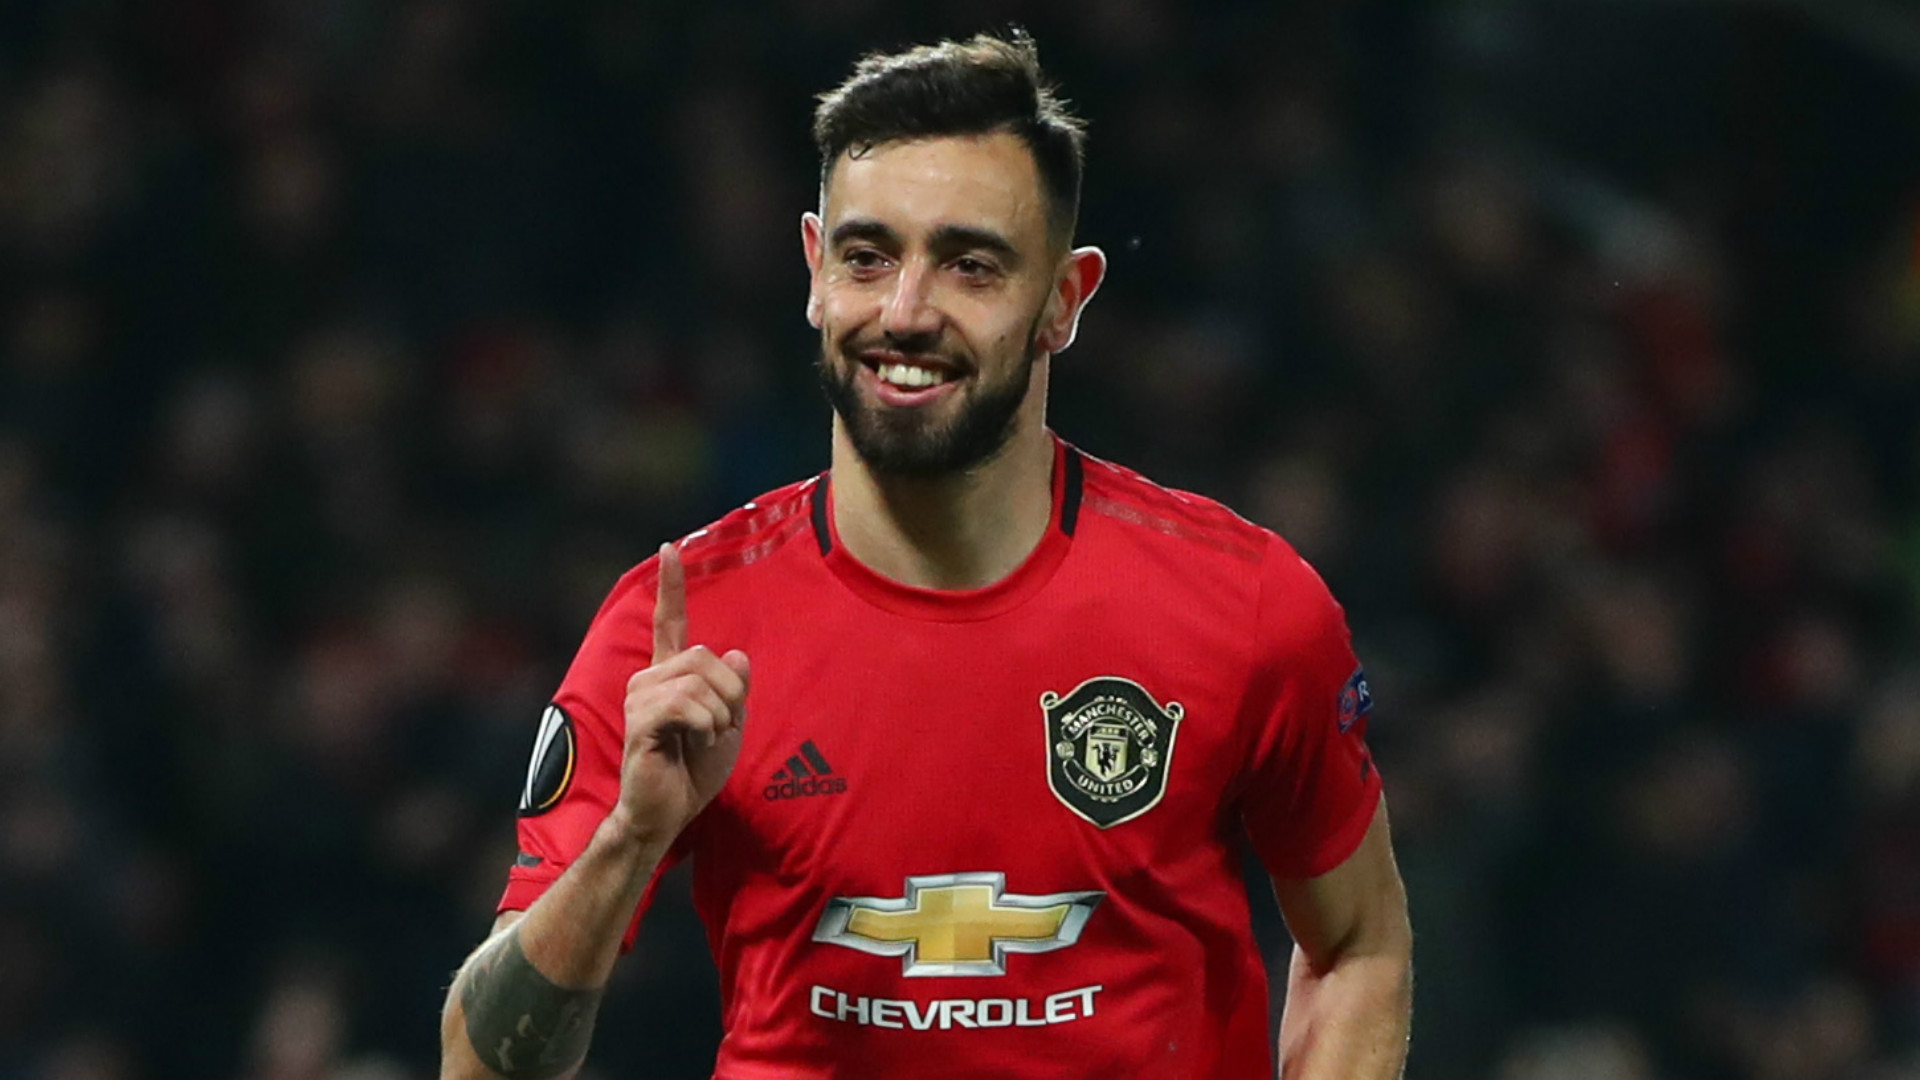 ⚡Bruno Fernandes Scripts Premier League Record With Player of the Month Award